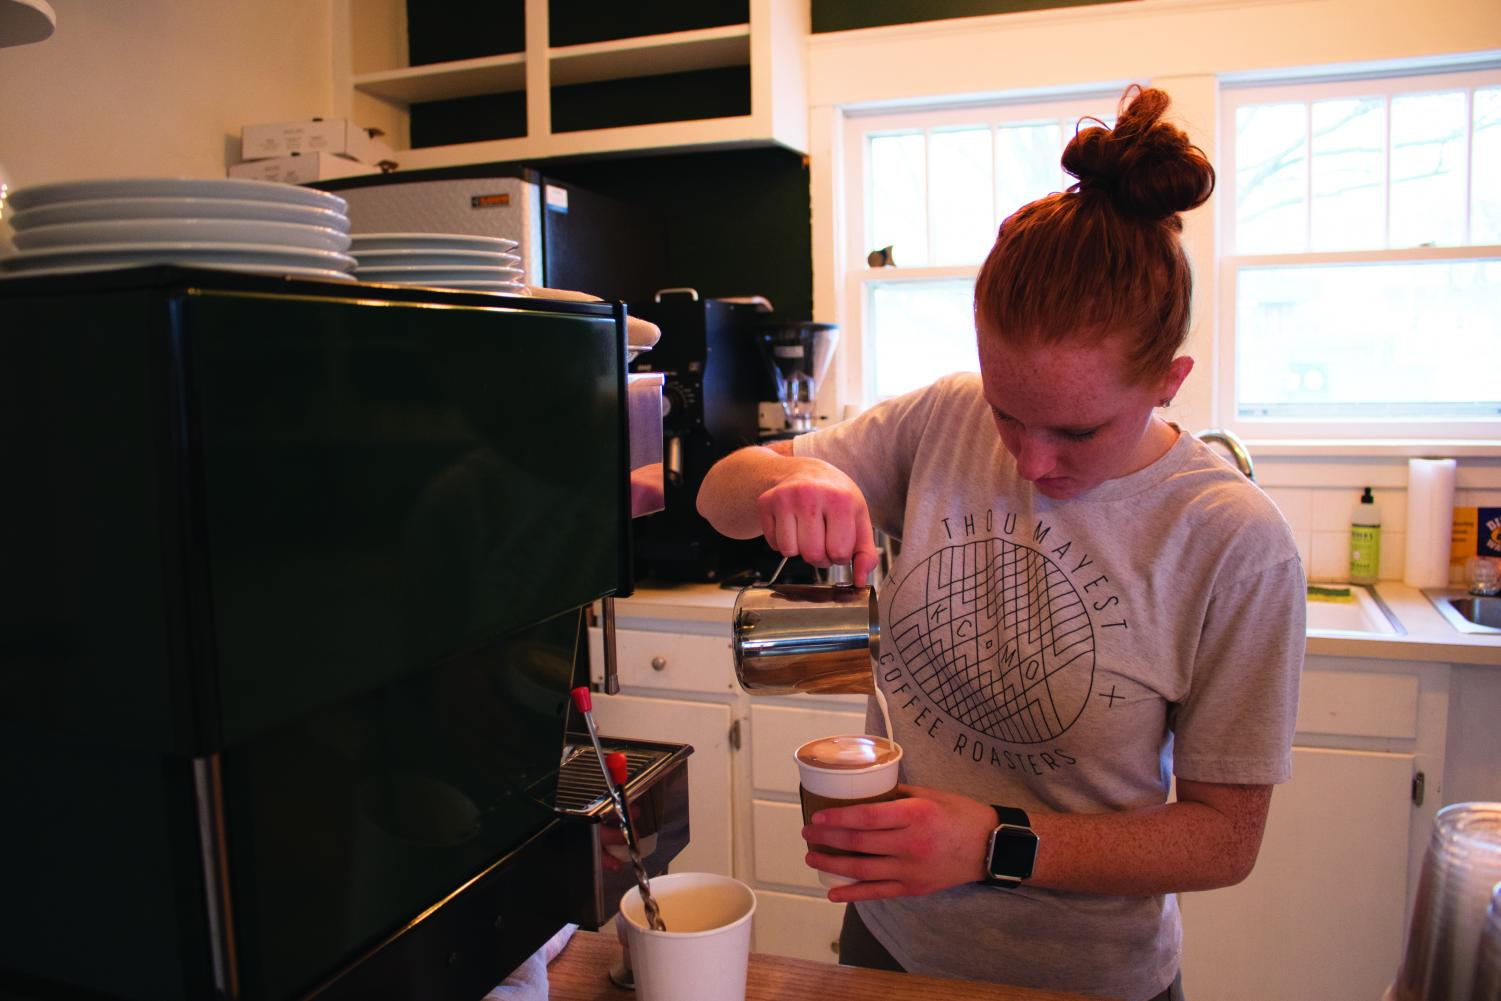 133 Coffee opened next to Cranberry Market at 106 6th Street on Feb. 16. The owners hope that students and members of the community are able to use their new coffee shop as a place to gather over coffee.